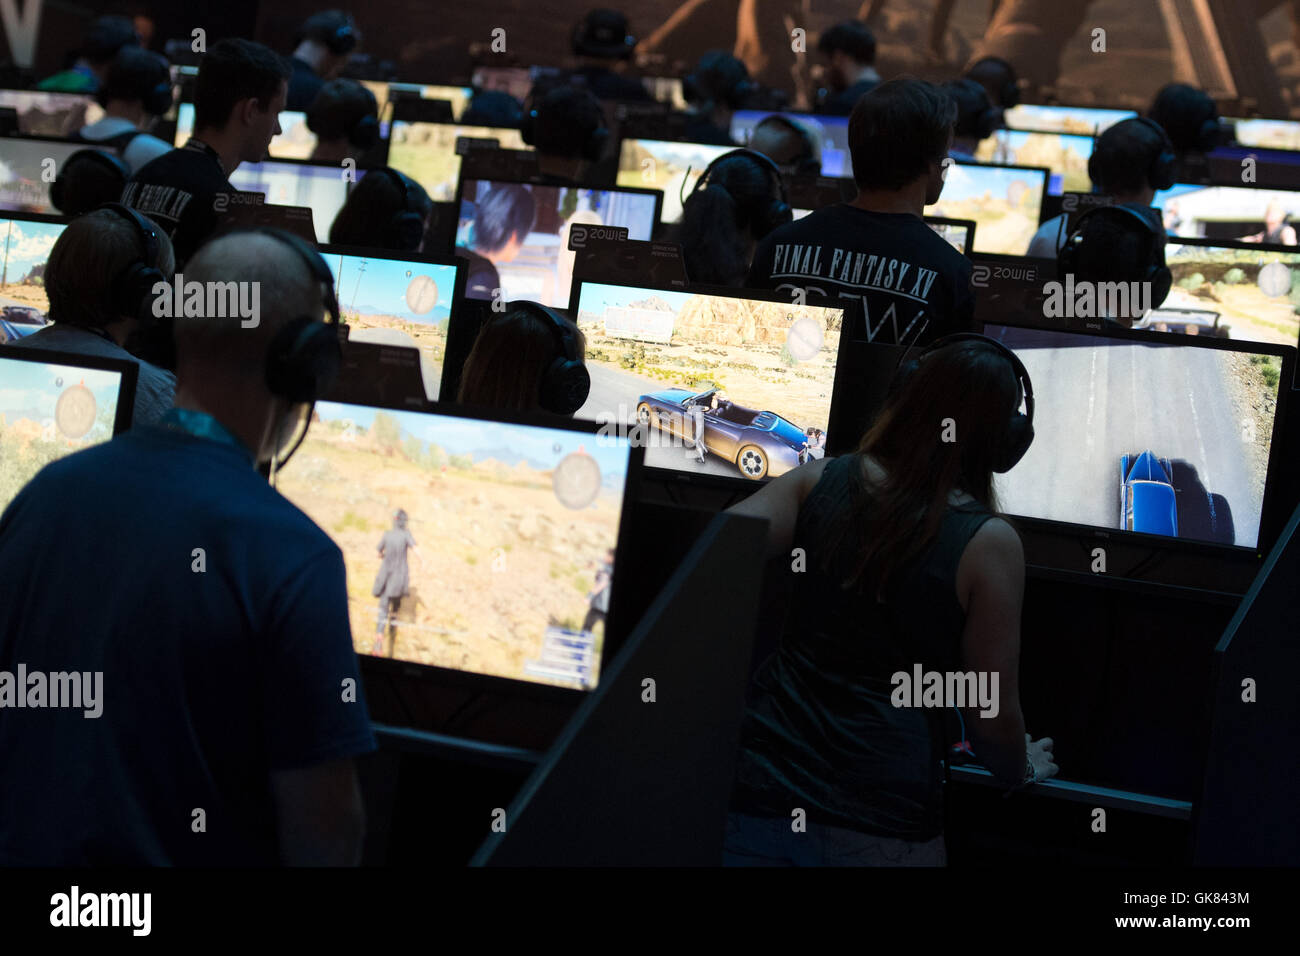 Cologne, Germany. 18th Aug, 2016. Visitors playing the game 'Final Fantasy XV' at the Gamescom gaming convention - Stock Image